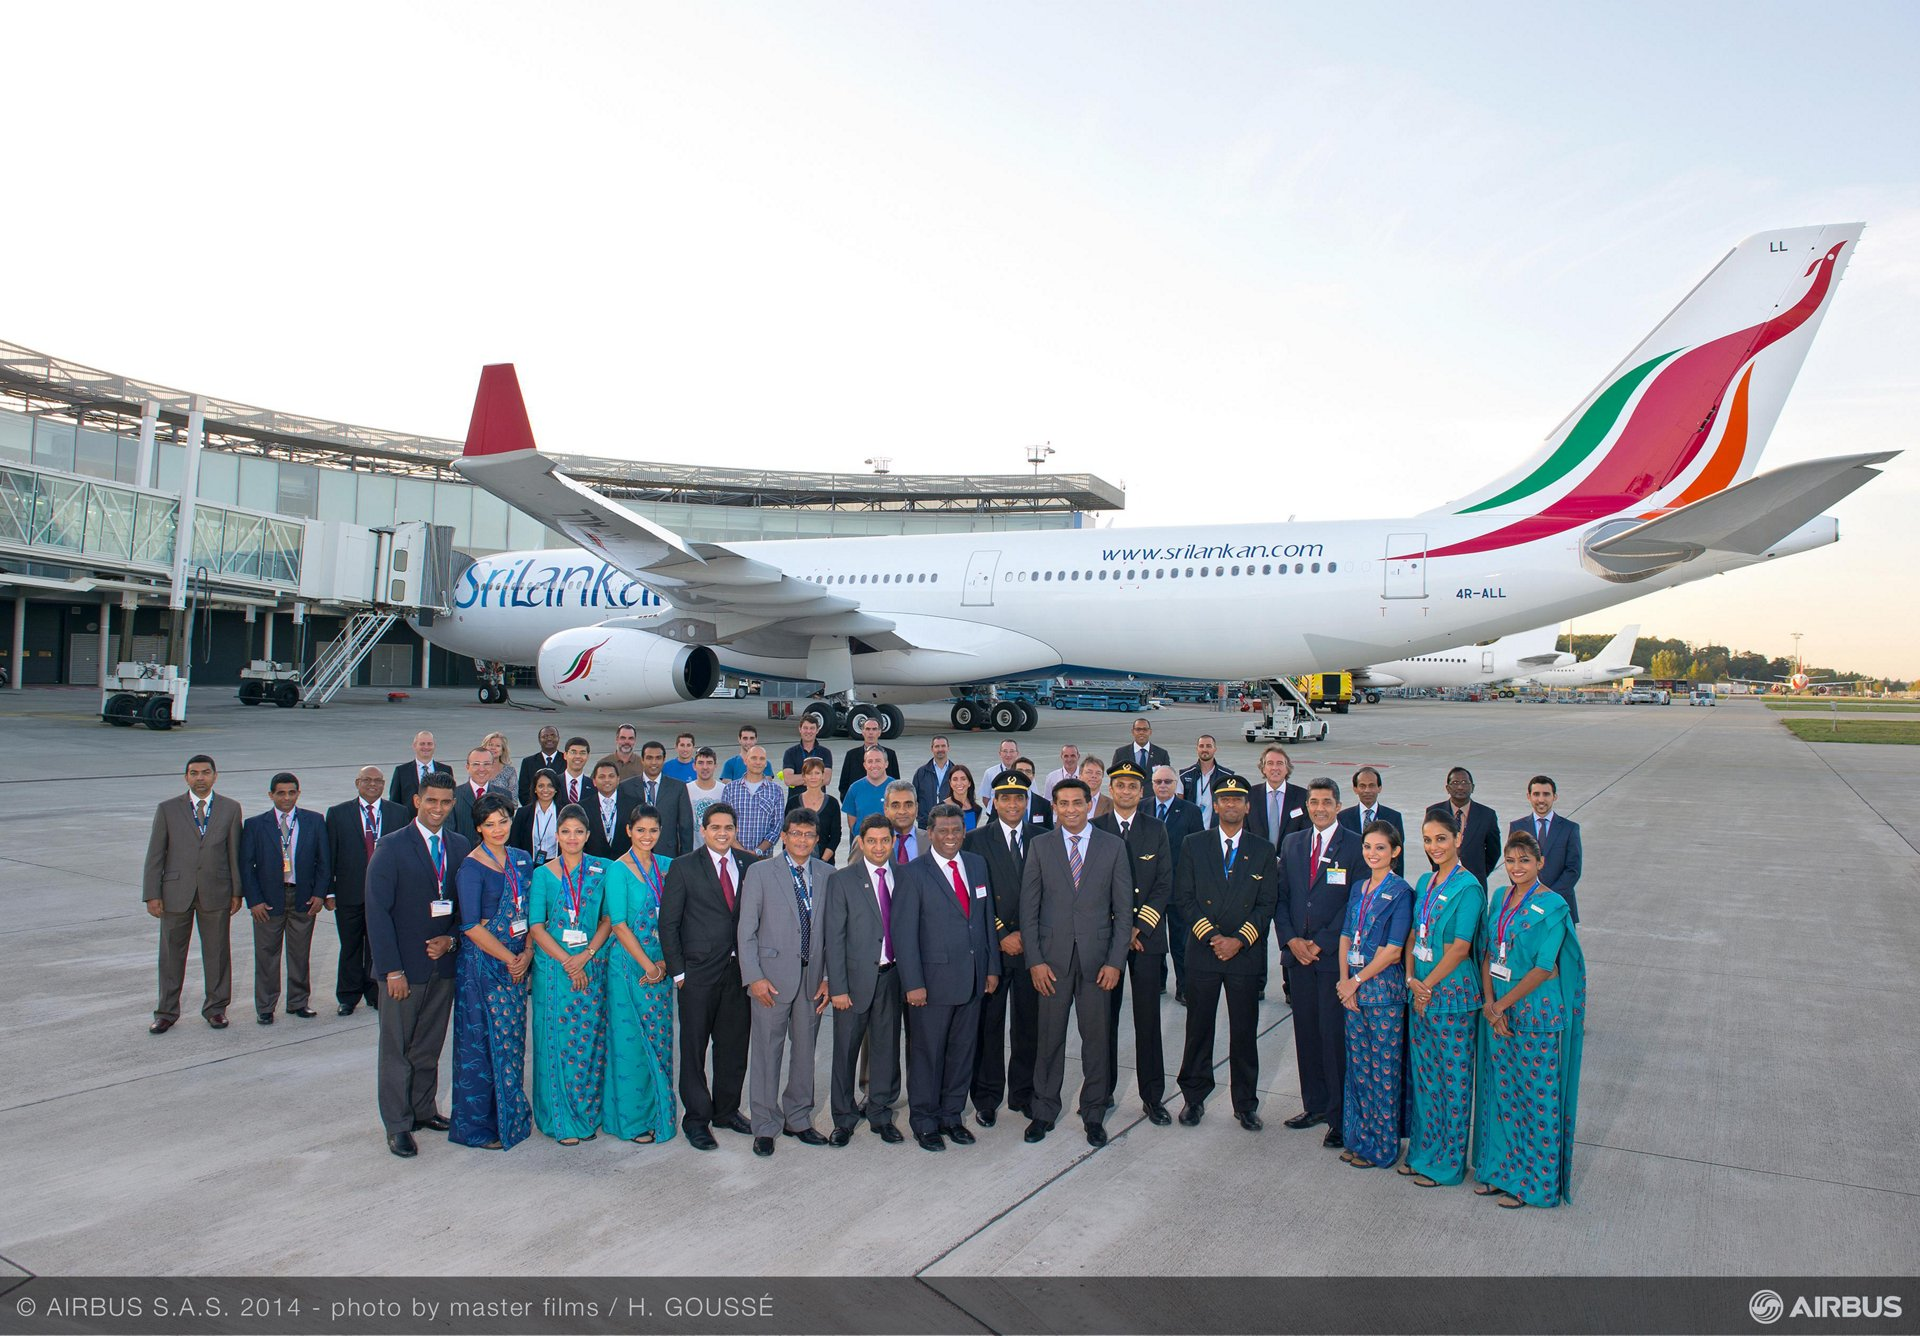 SriLankan Airlines has received its first A330-300 jetliner, which joins the carrier's existing all-Airbus fleet of A320, A321, A330-200 and A340-300 aircraft